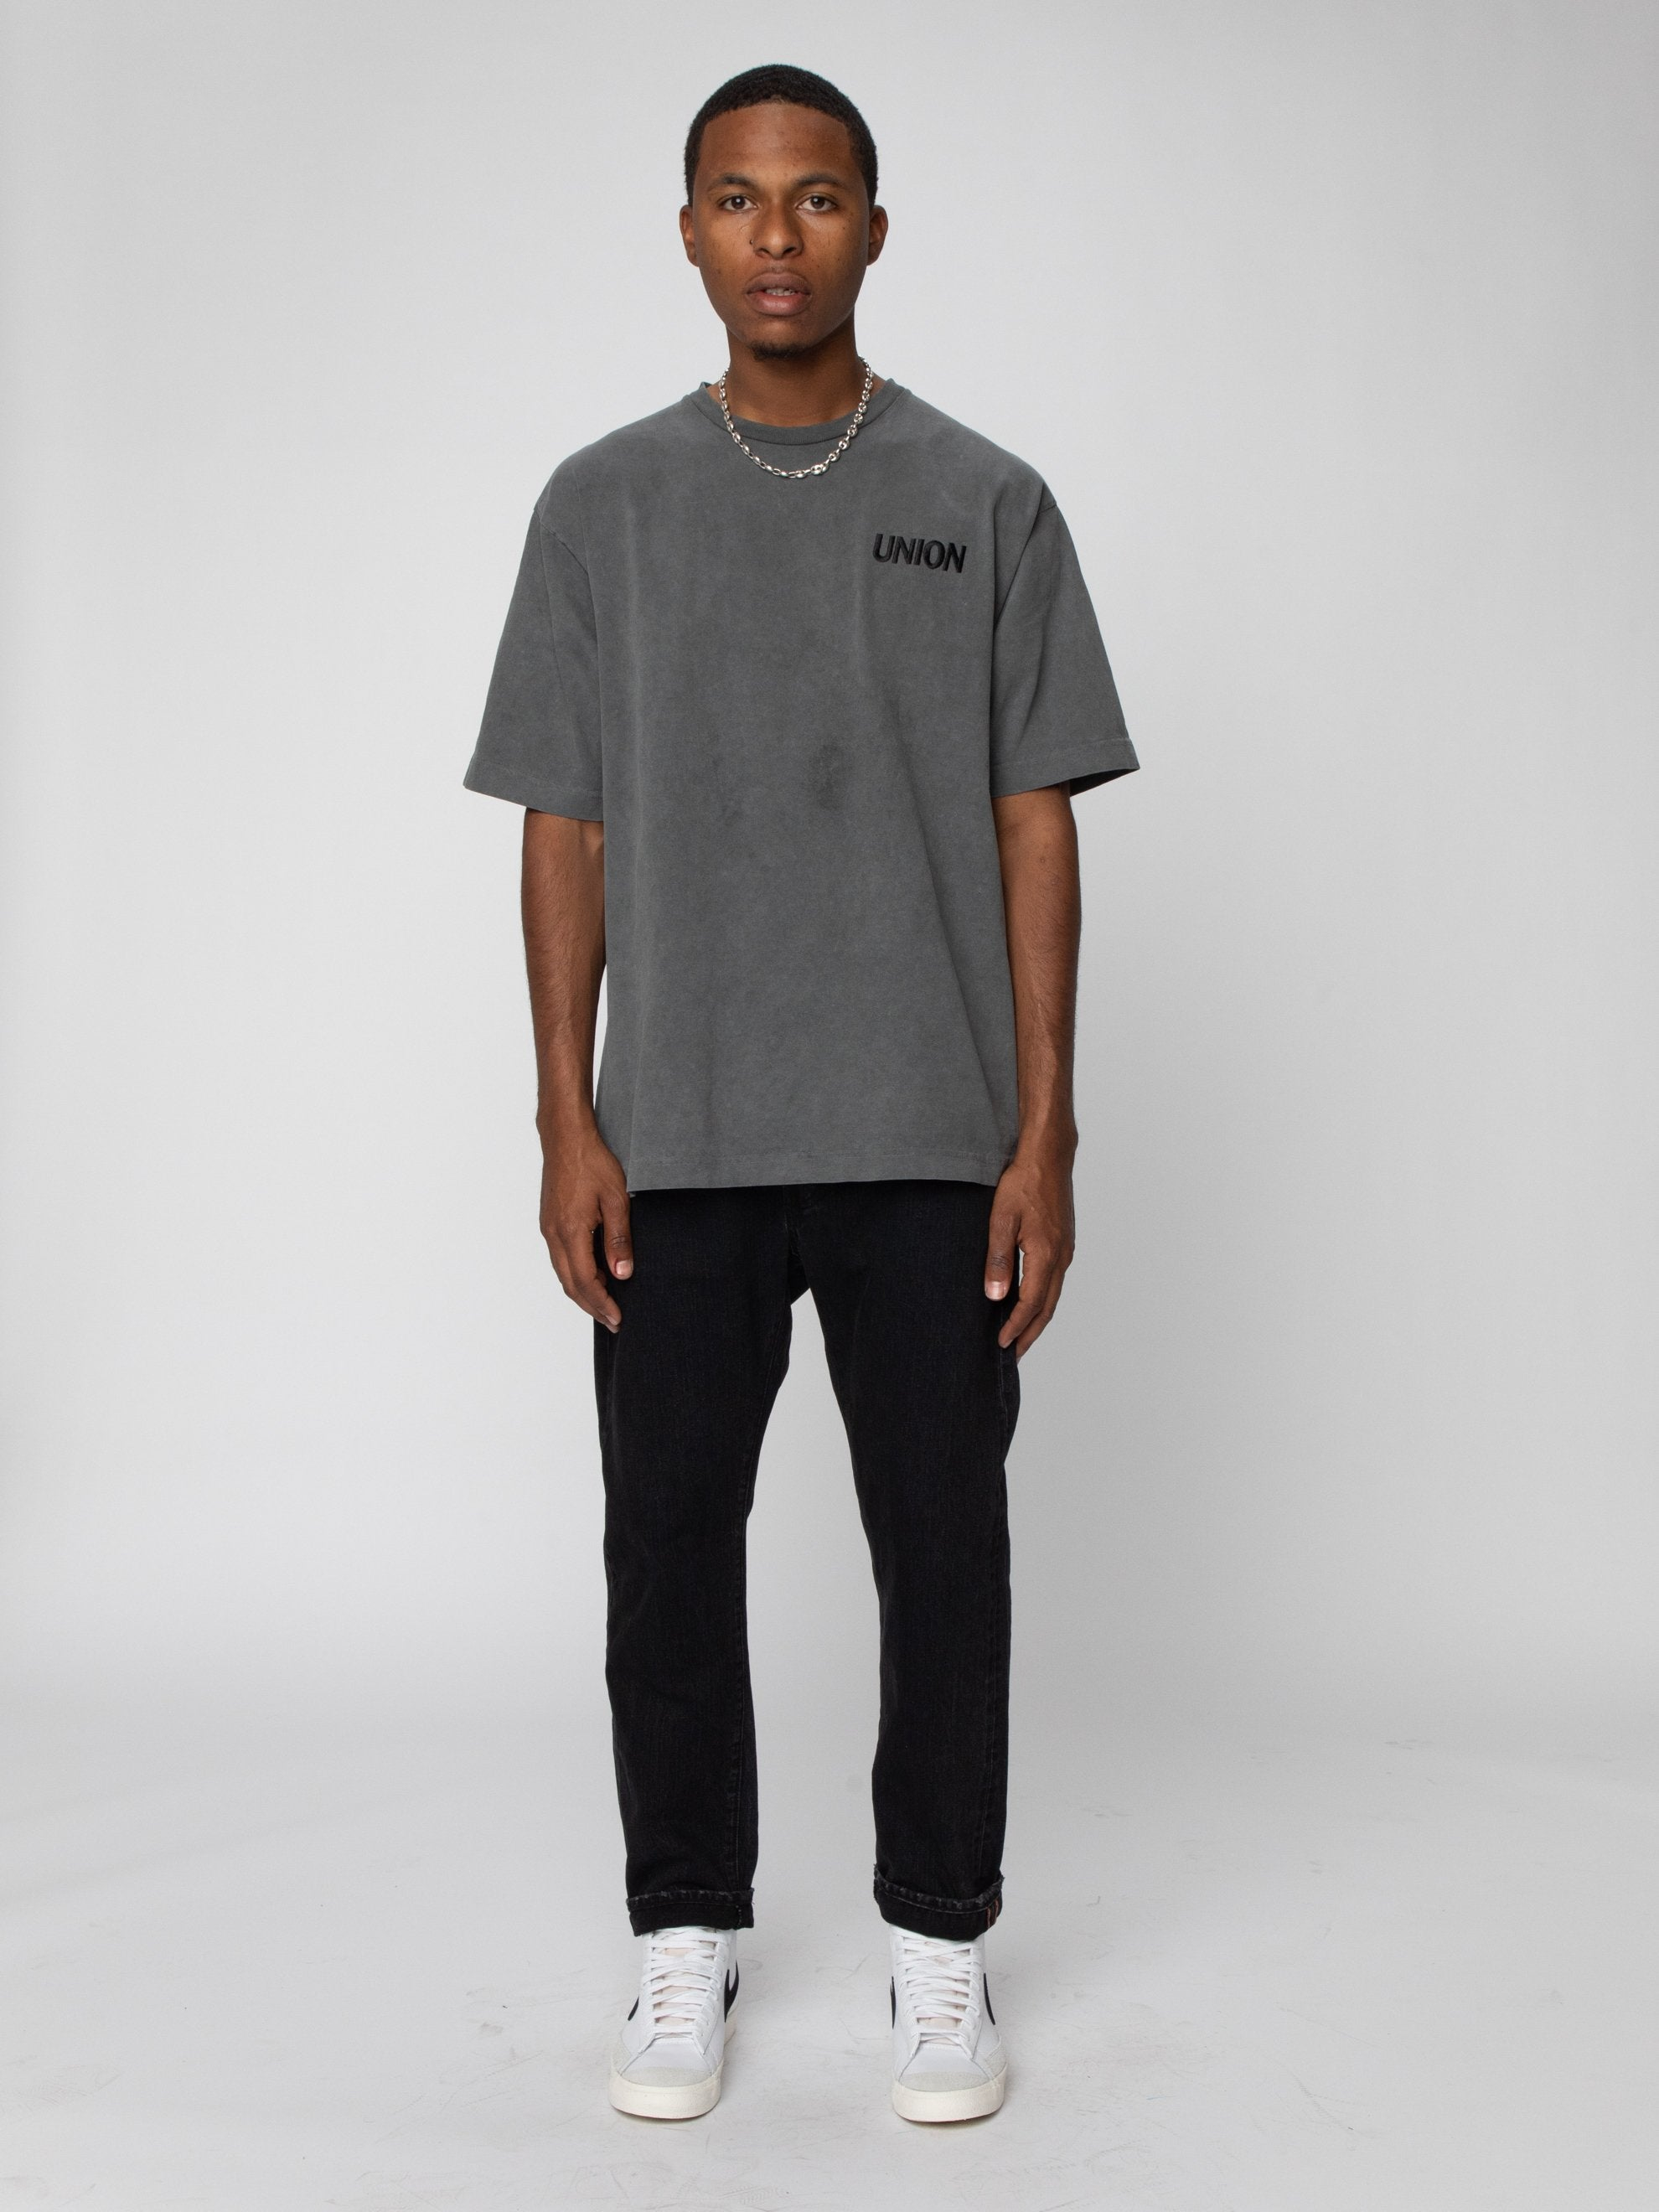 Dub Elevated S/S Tee